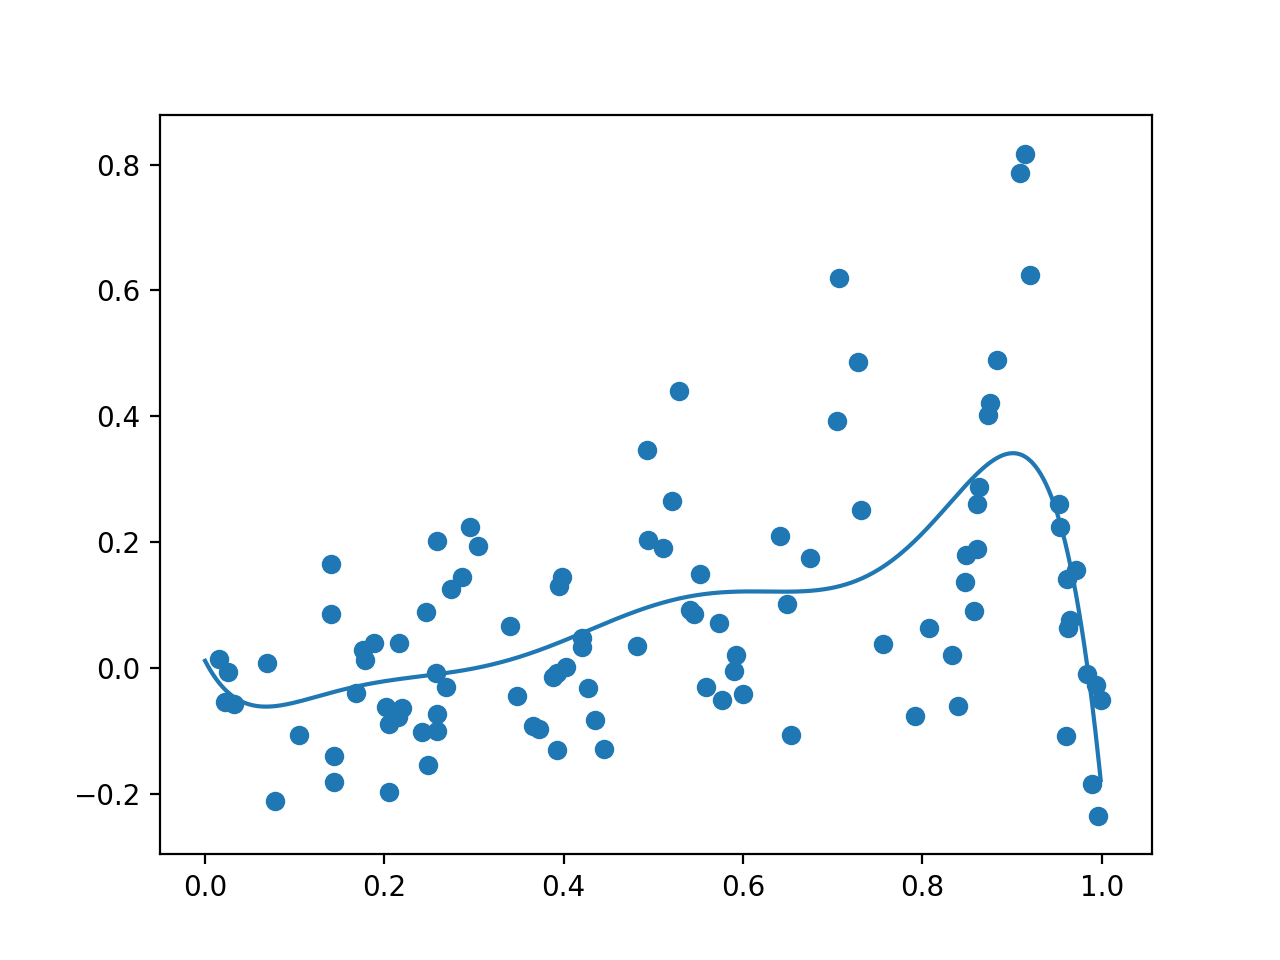 Plot Showing Random Sample With Noisy Evaluation (dots) and Surrogate Function Across the Domain (line).